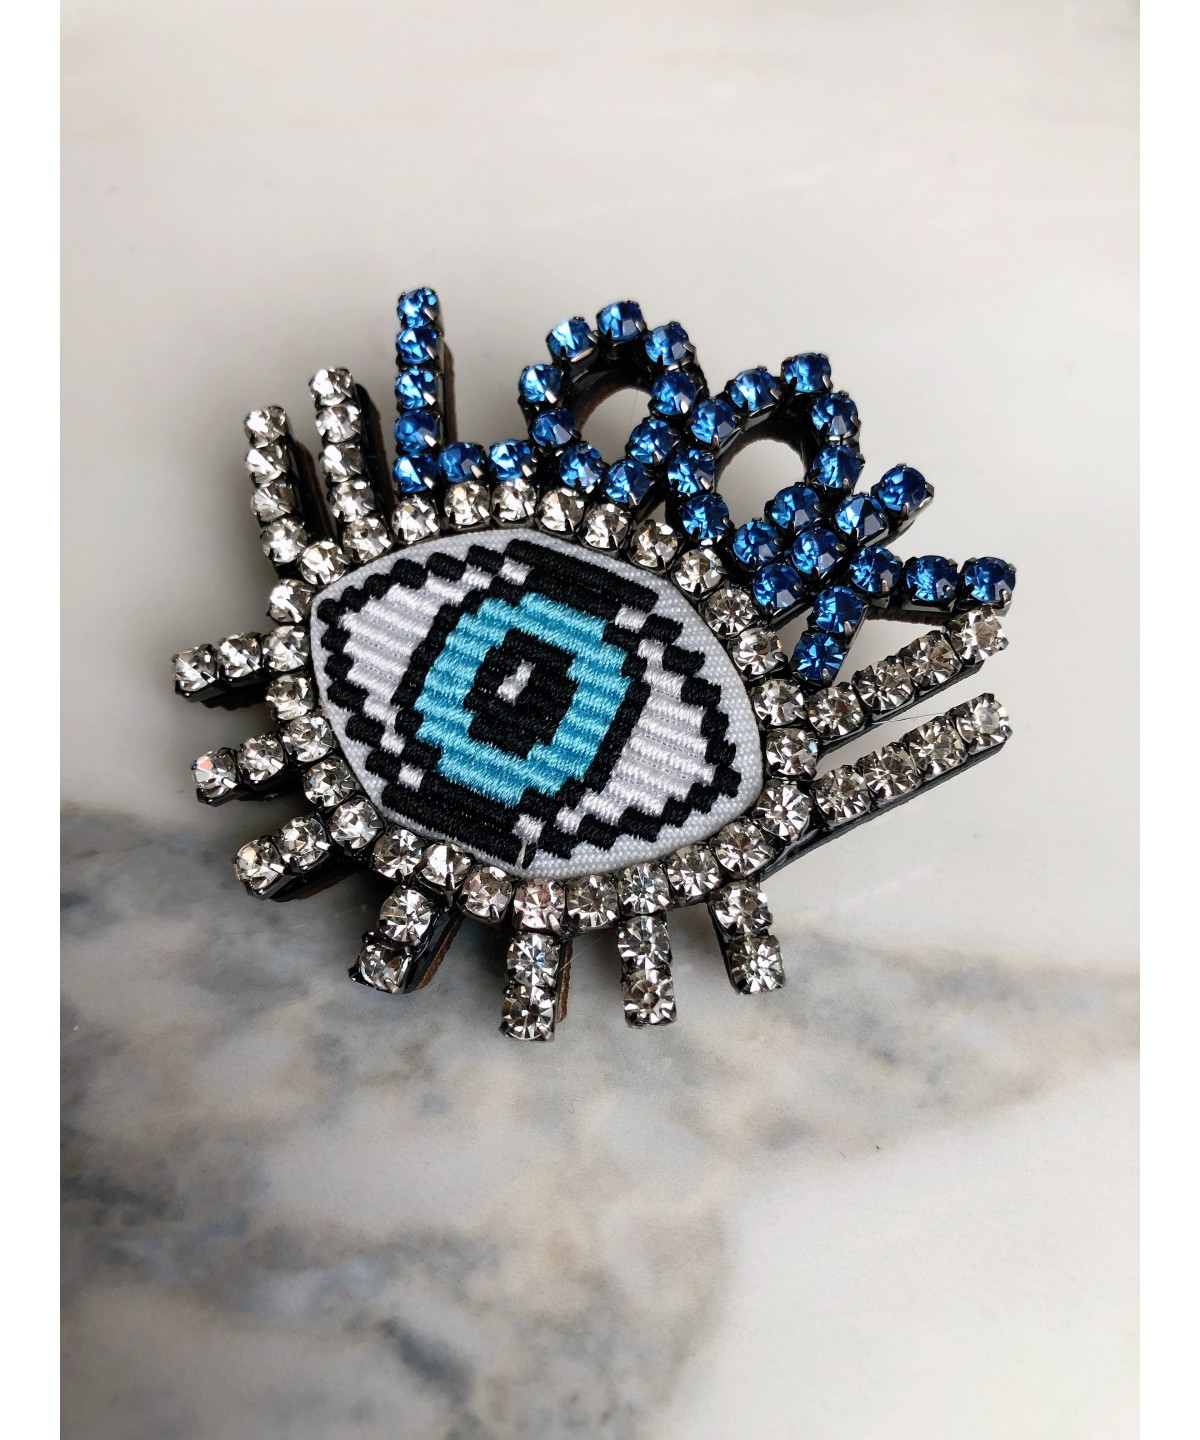 'Evil Eye' brooch